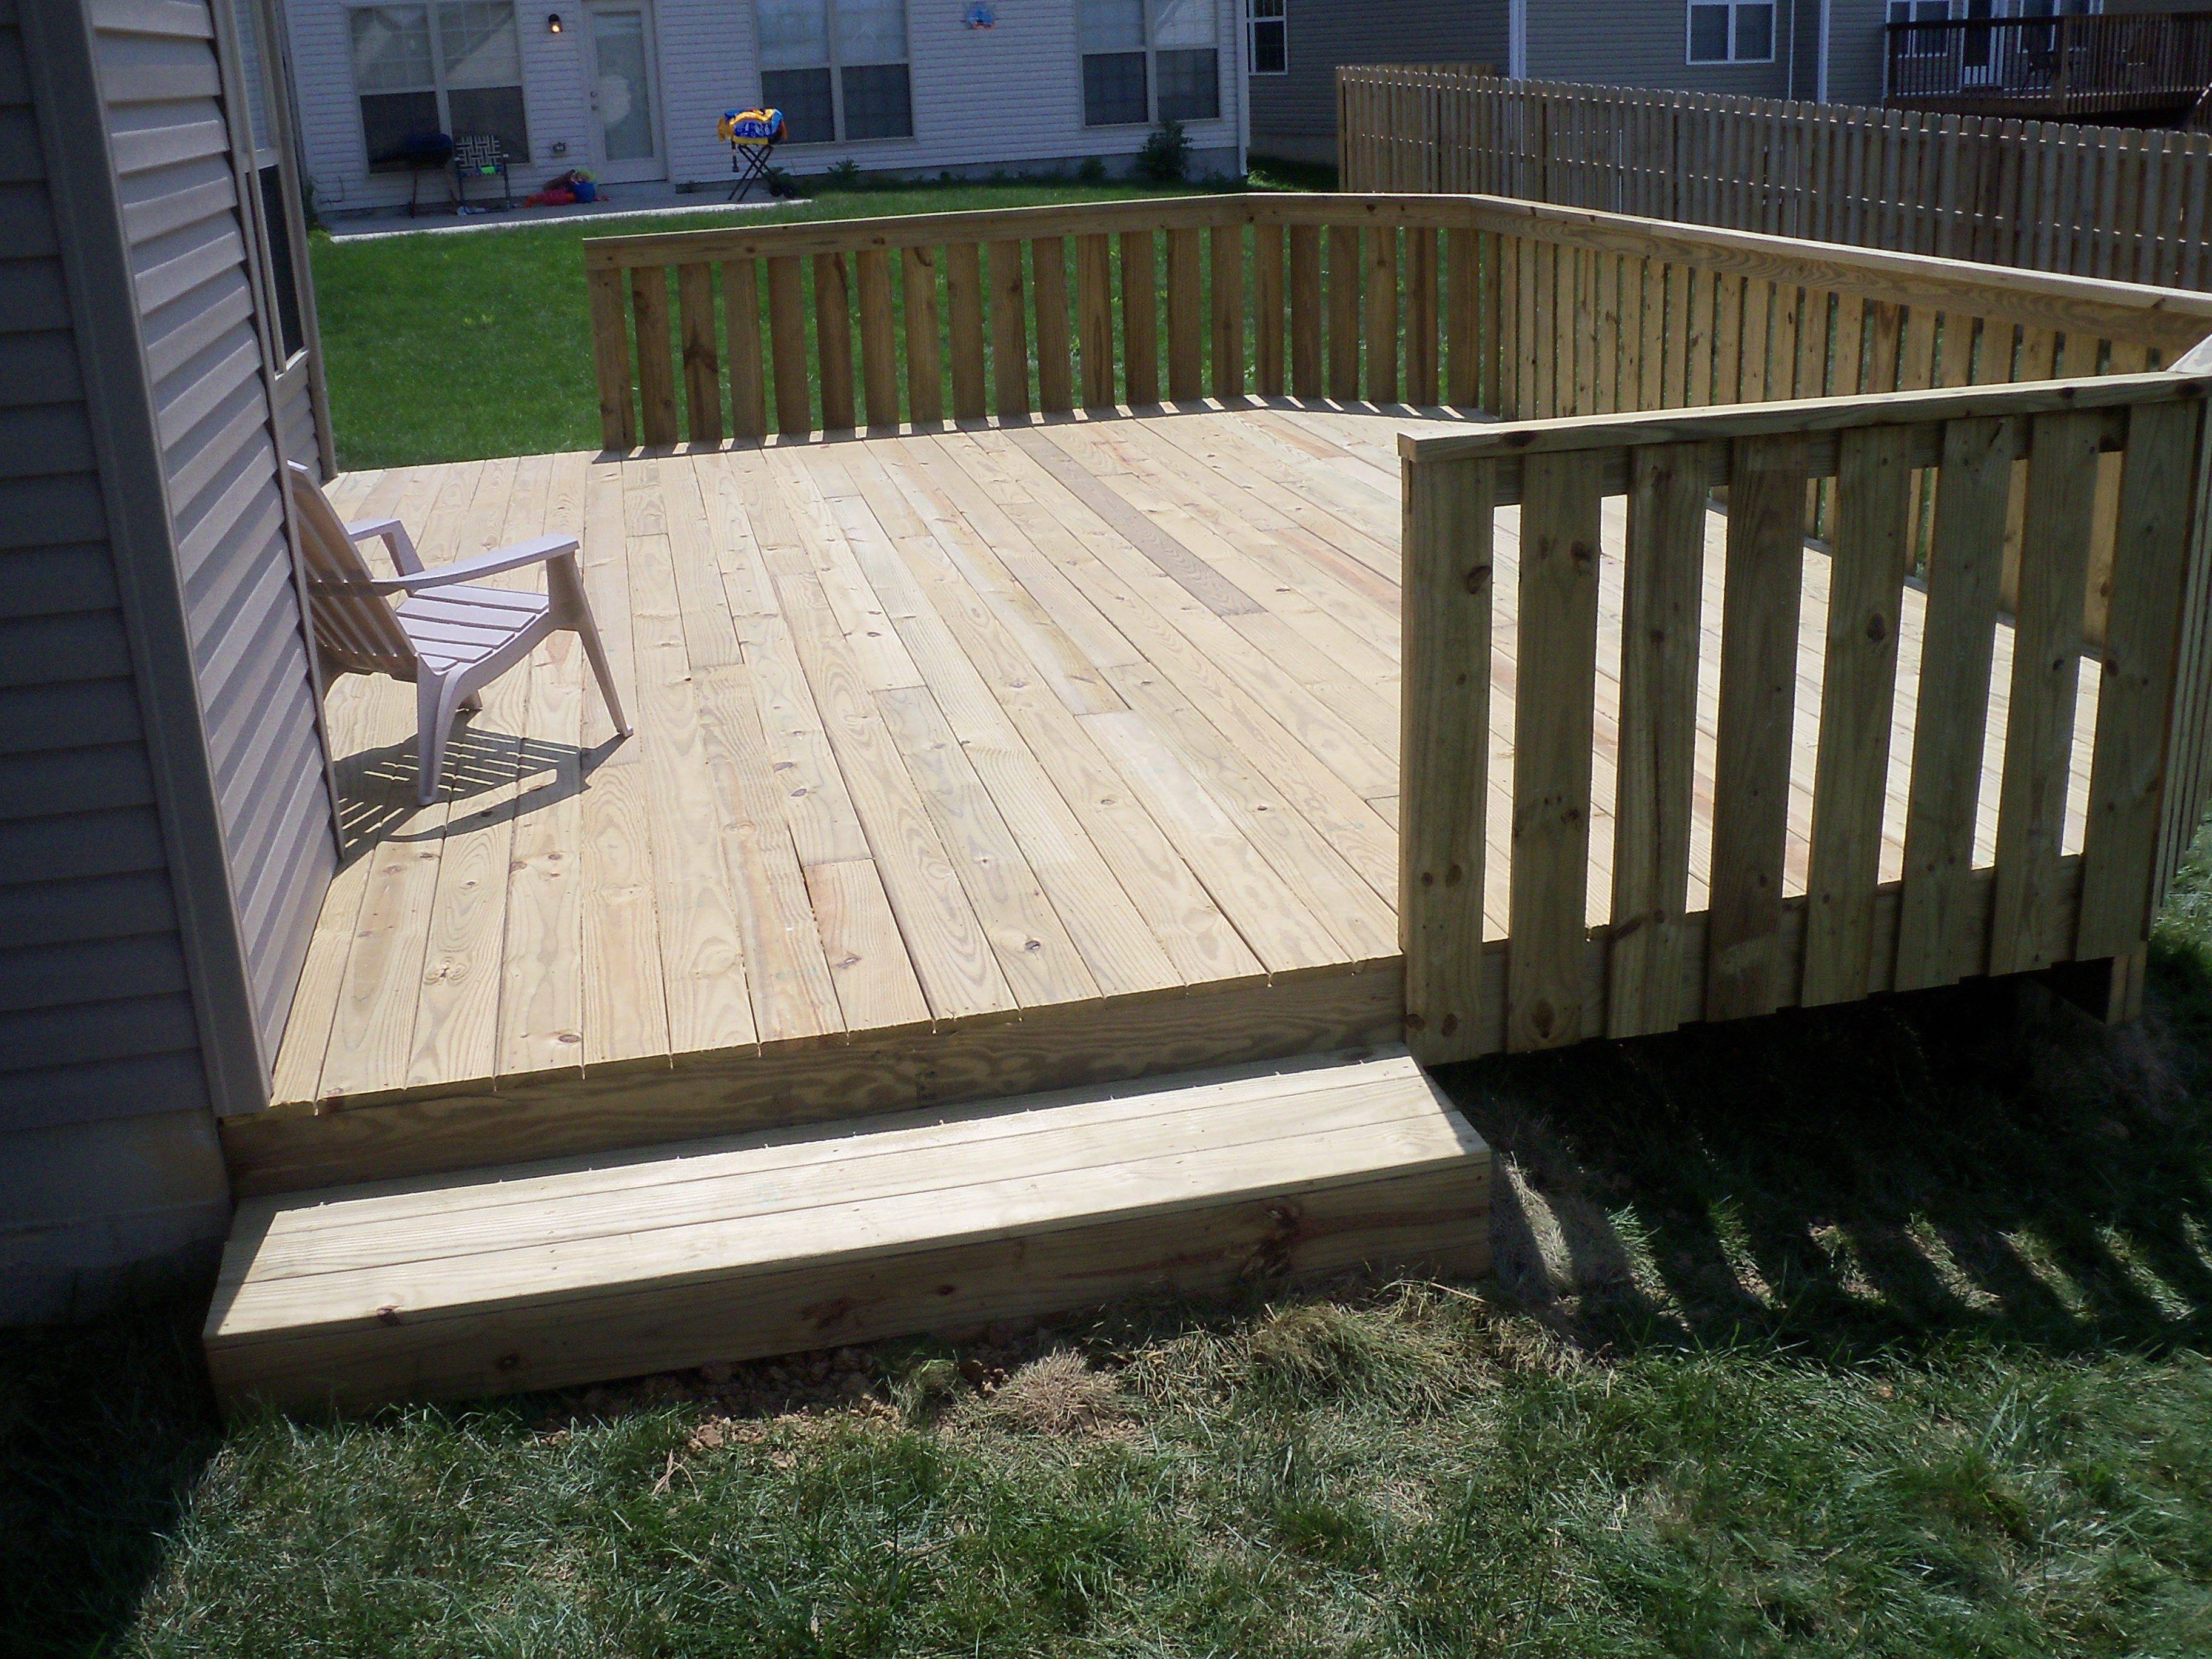 Wood Deck With Fence Boards For Privacy Wood Decks In